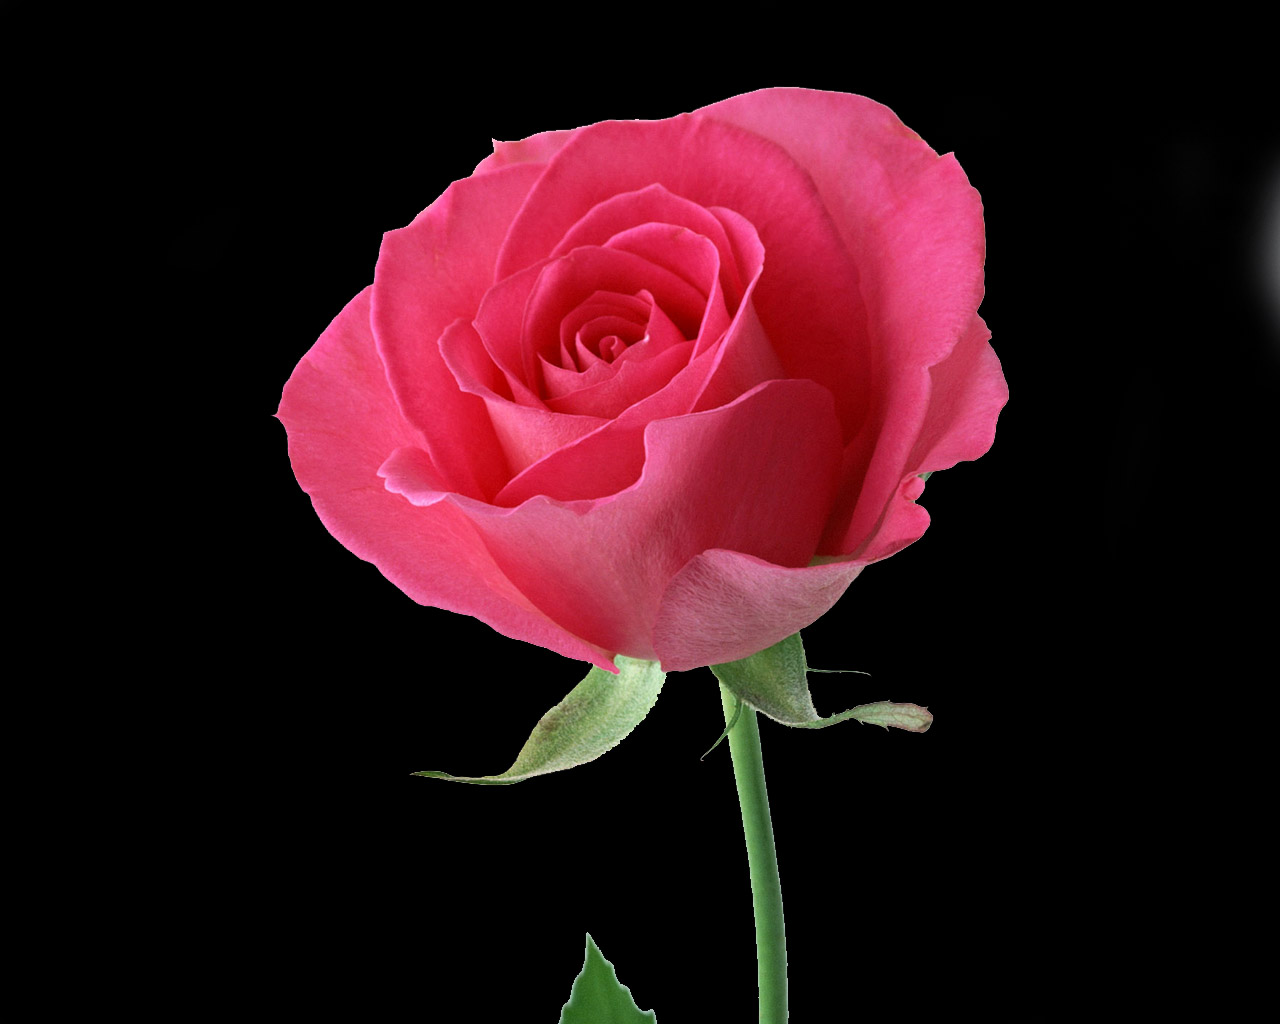 Beautiful Red Rose Flower Photo